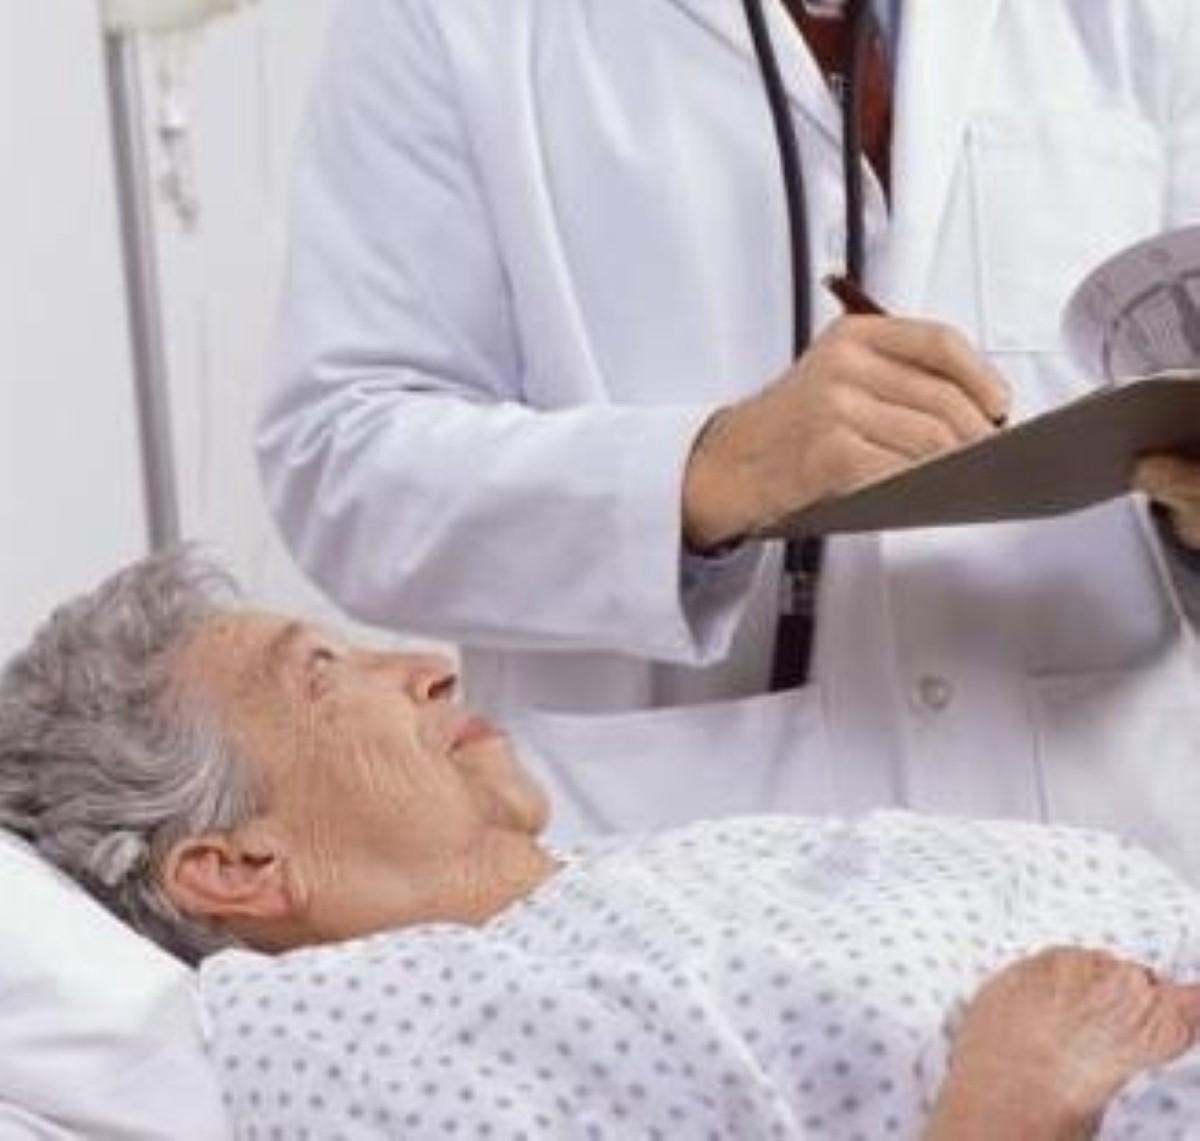 Half of Brits do not expect quality end of life care from NHS